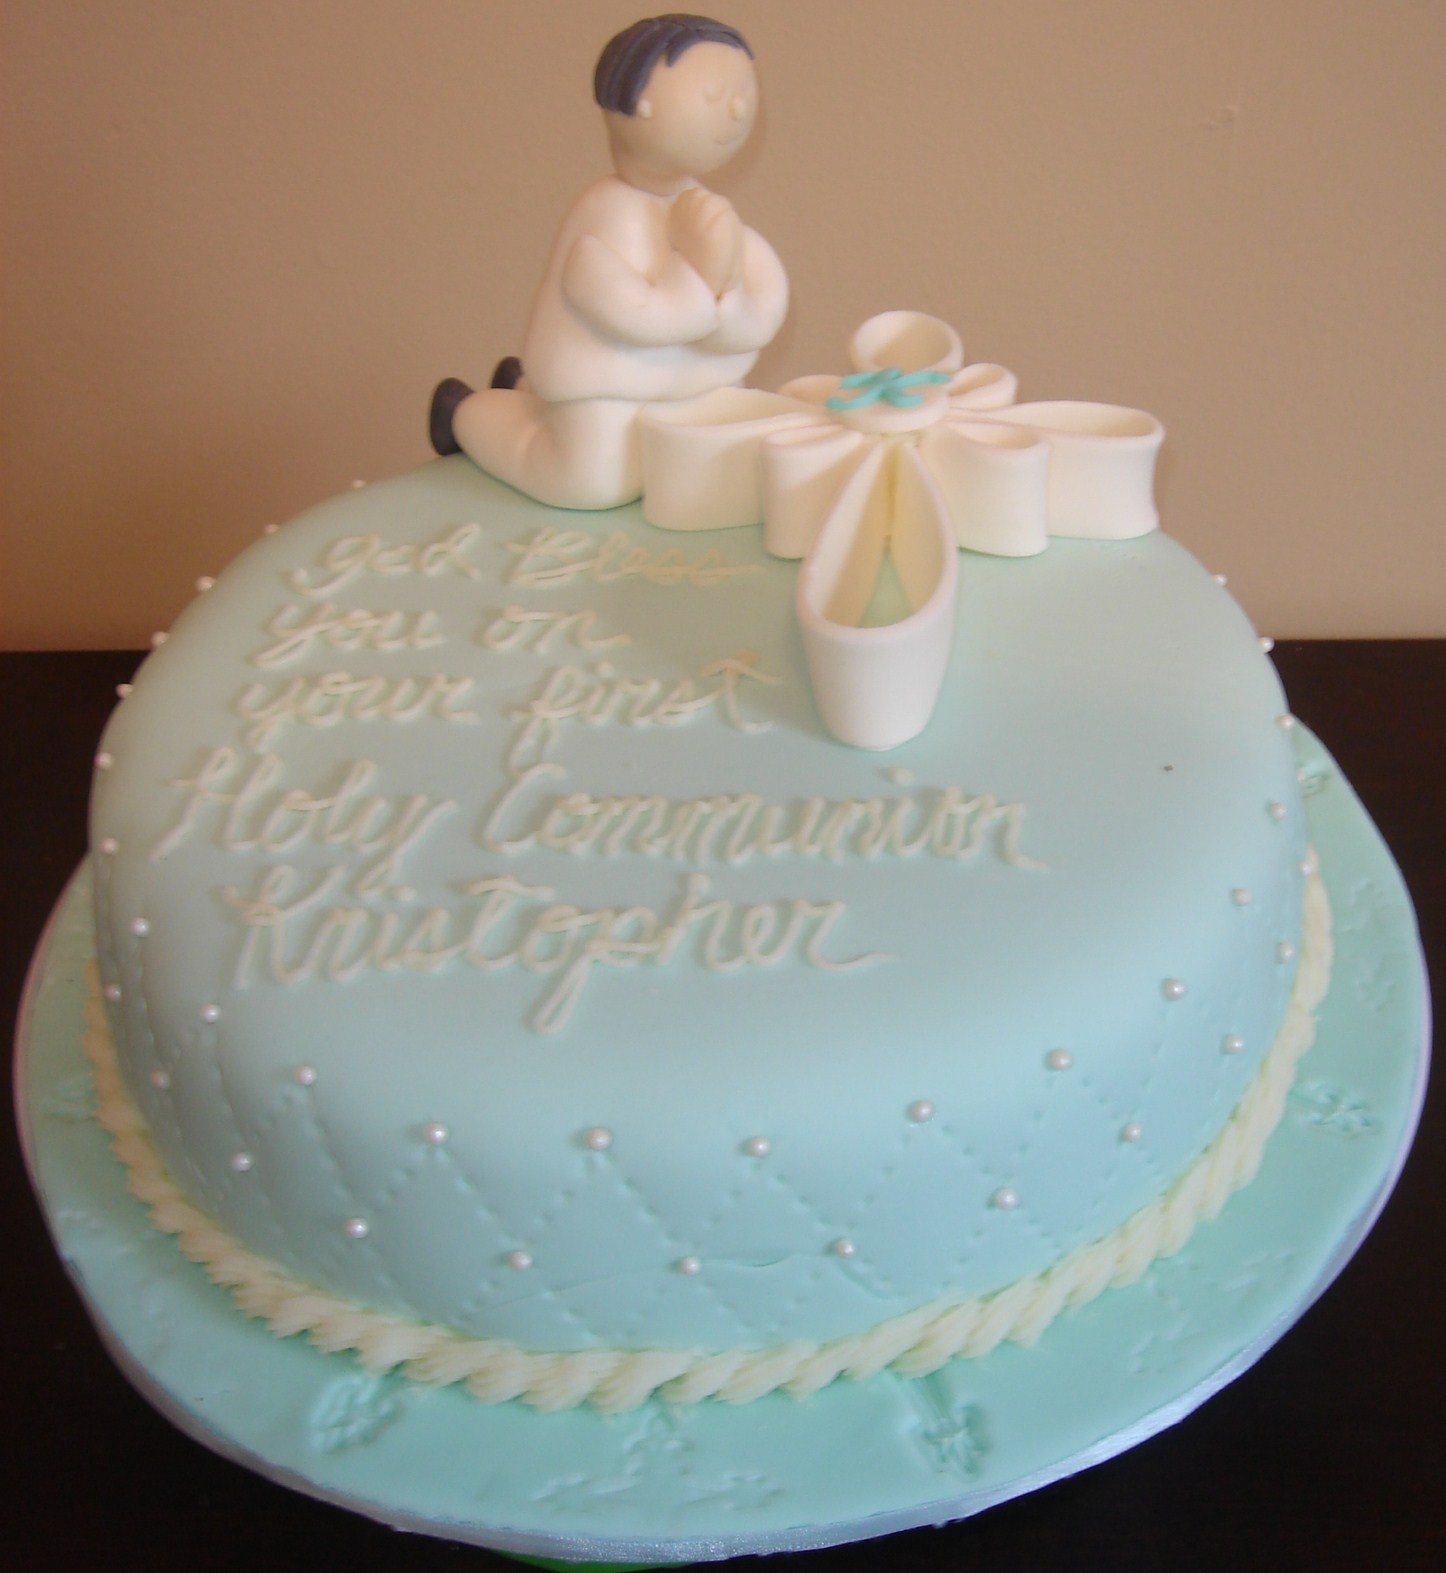 Figure and cross gumpastecarrot cake with cream cheese icing covered